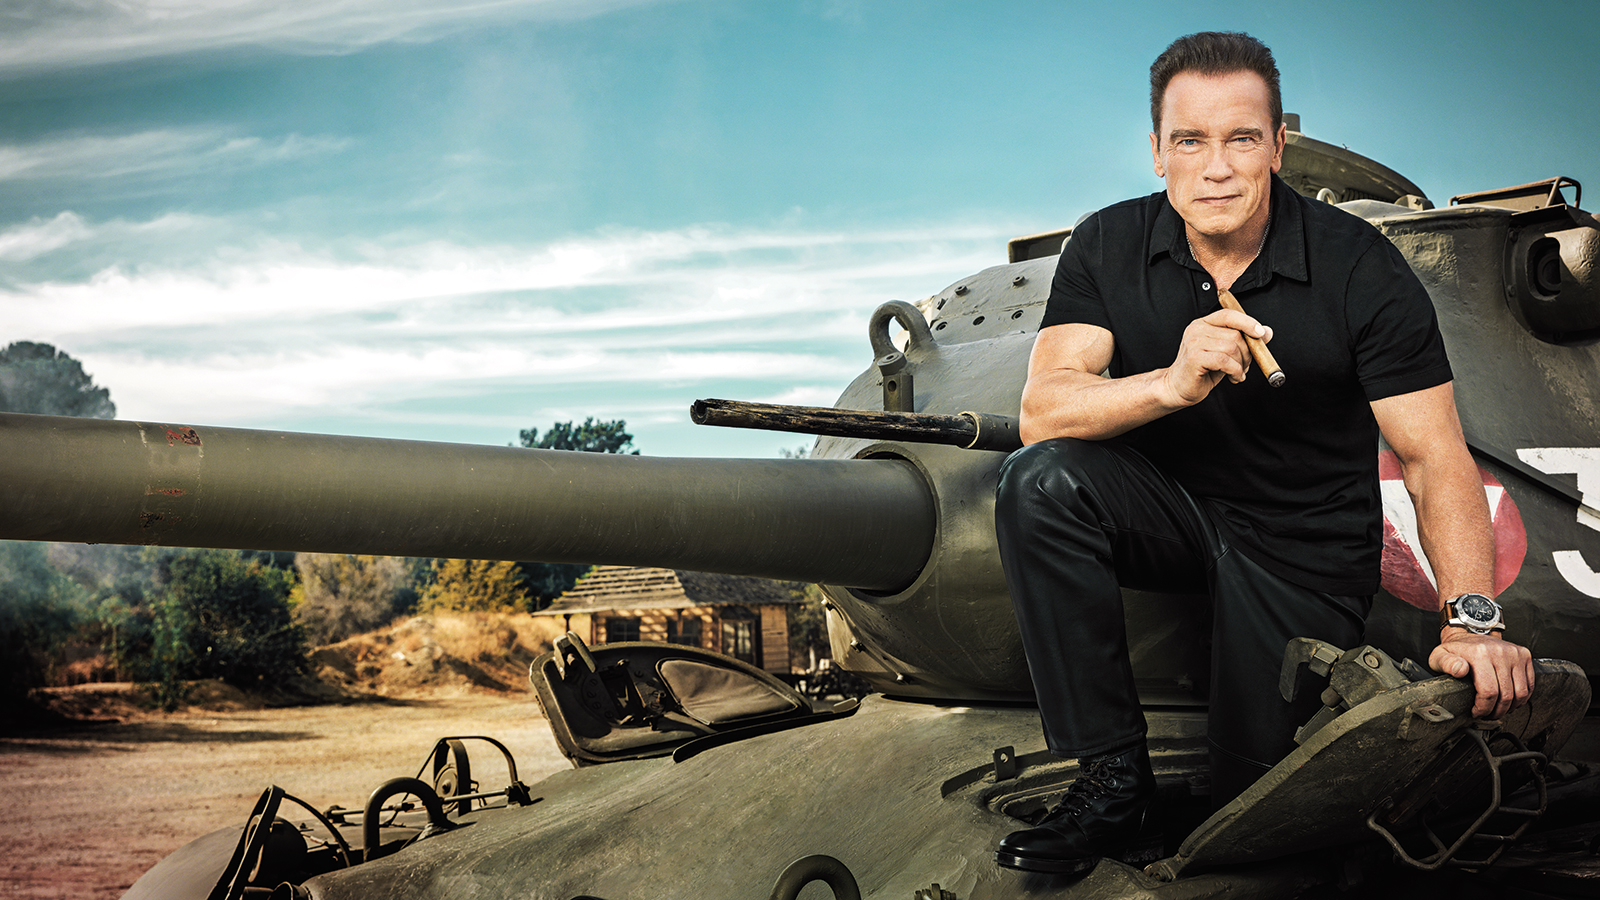 Arnold Schwarzenegger, ever-present cigar in hand, climbing into his own personal tank in Santa Clarita, California.